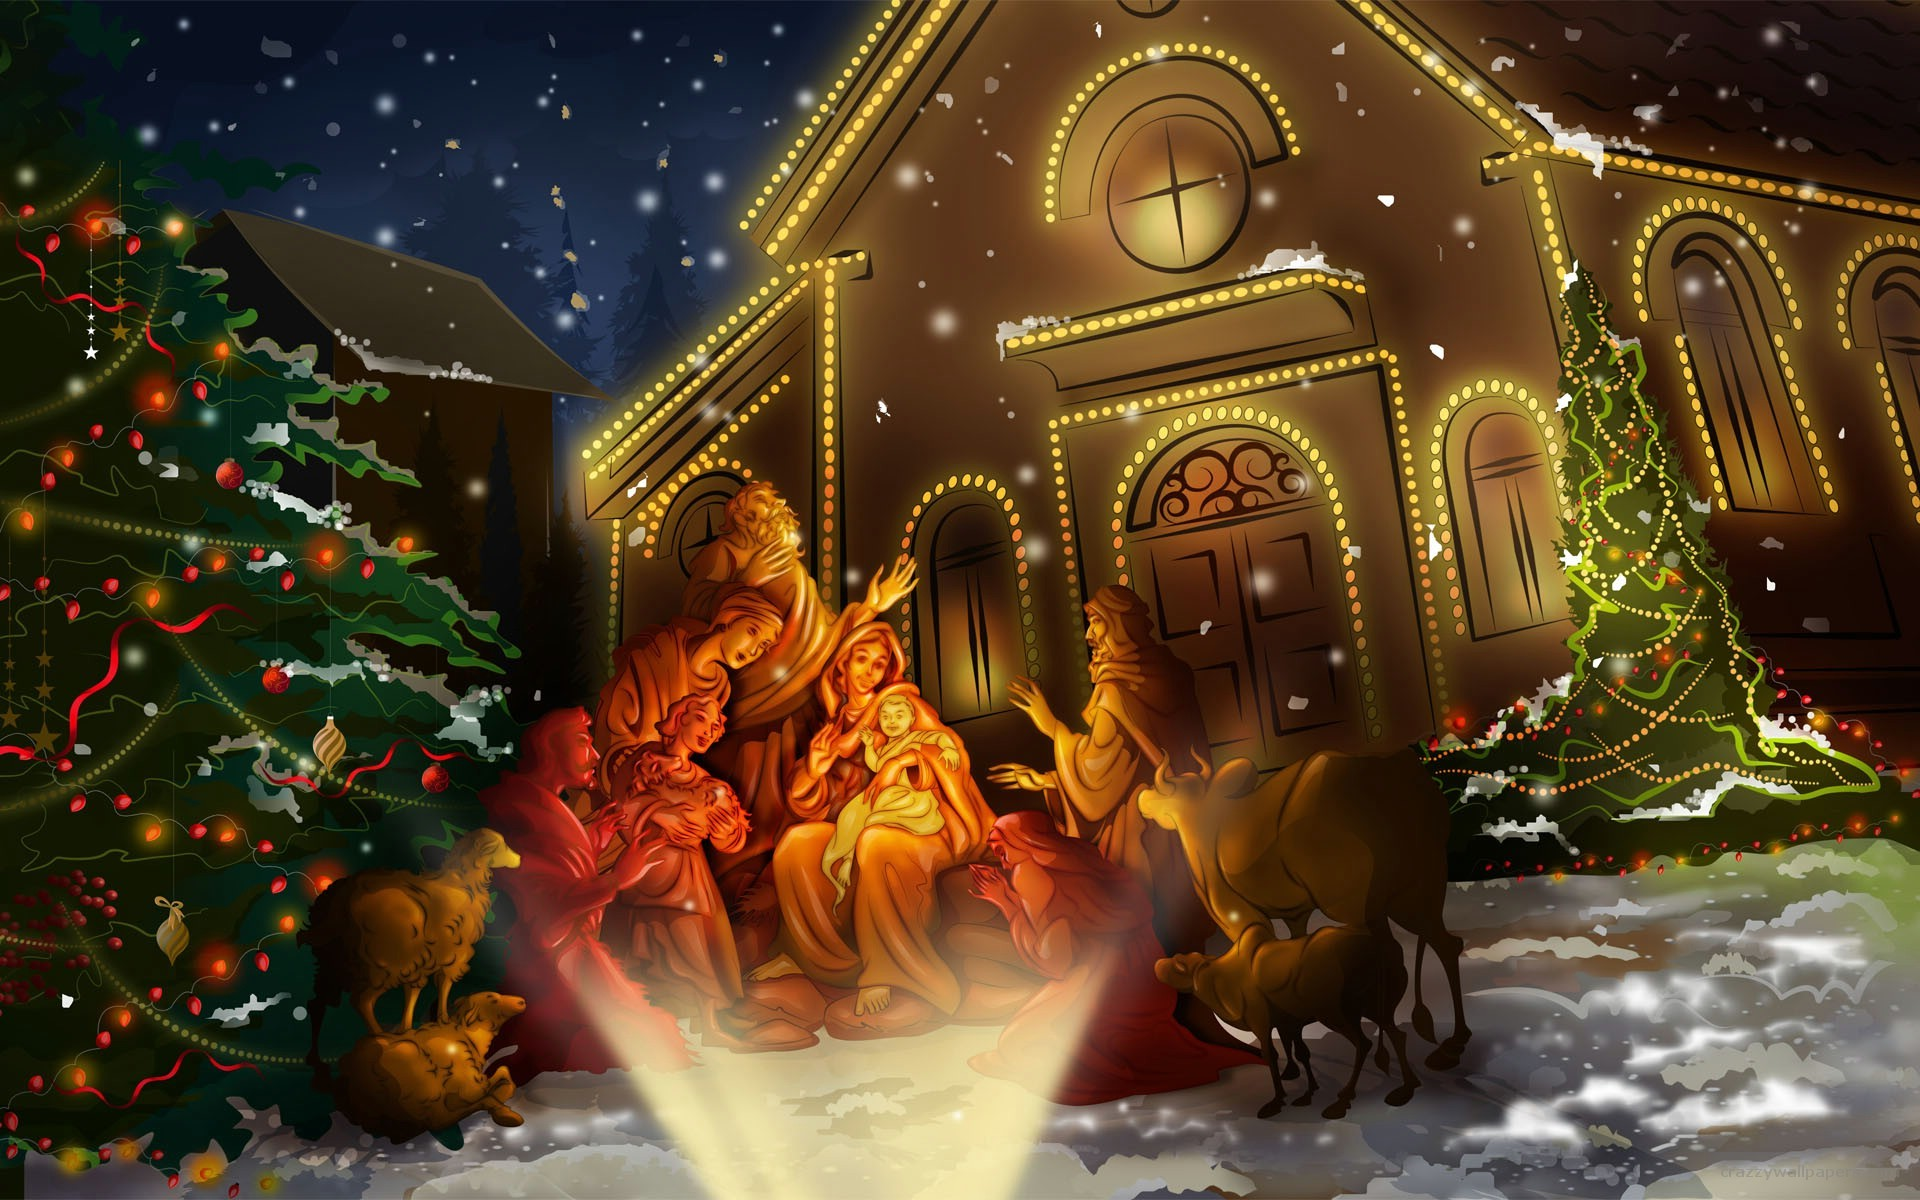 18 Free Christmas Images Background Wallpapers